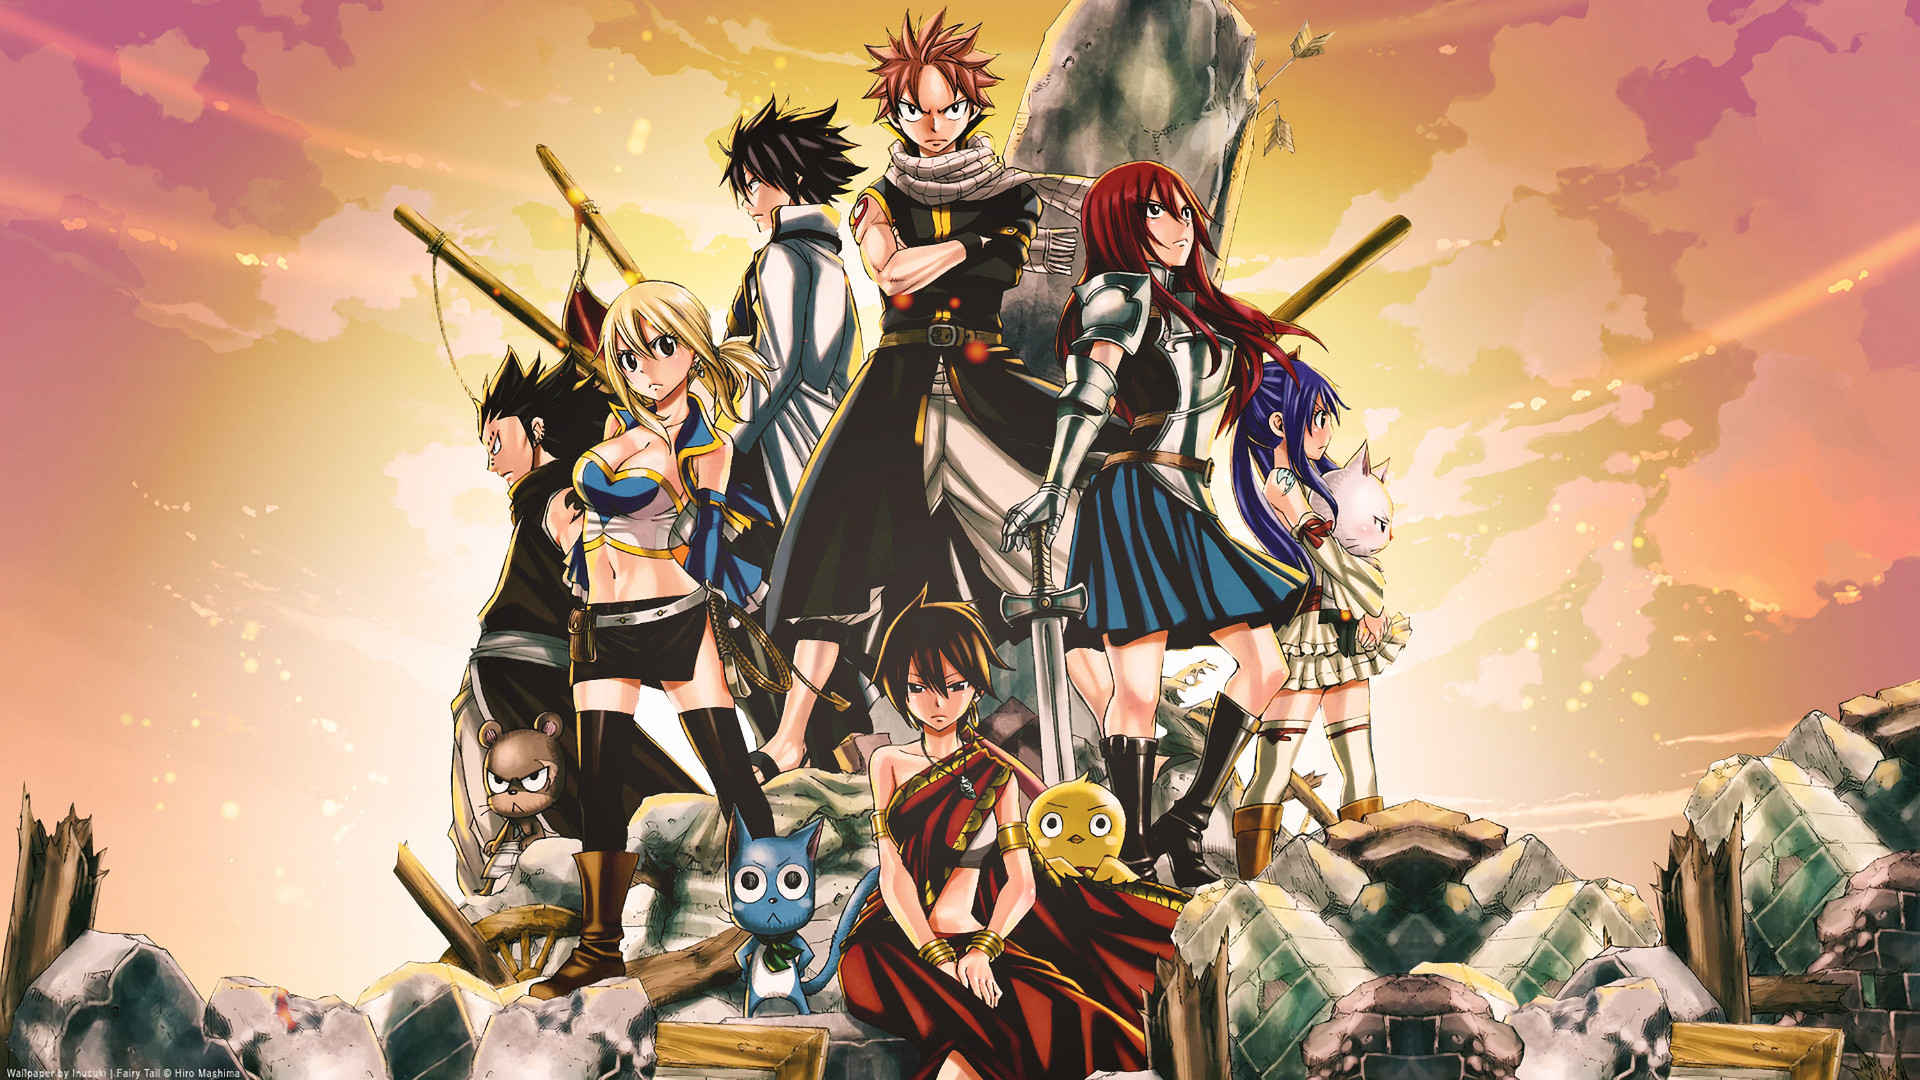 1920x1080 Movie - Fairy Tail the Movie: Phoenix Priestess Anime Lucy Heartfilia Natsu  Dragneel Erza Scarlet